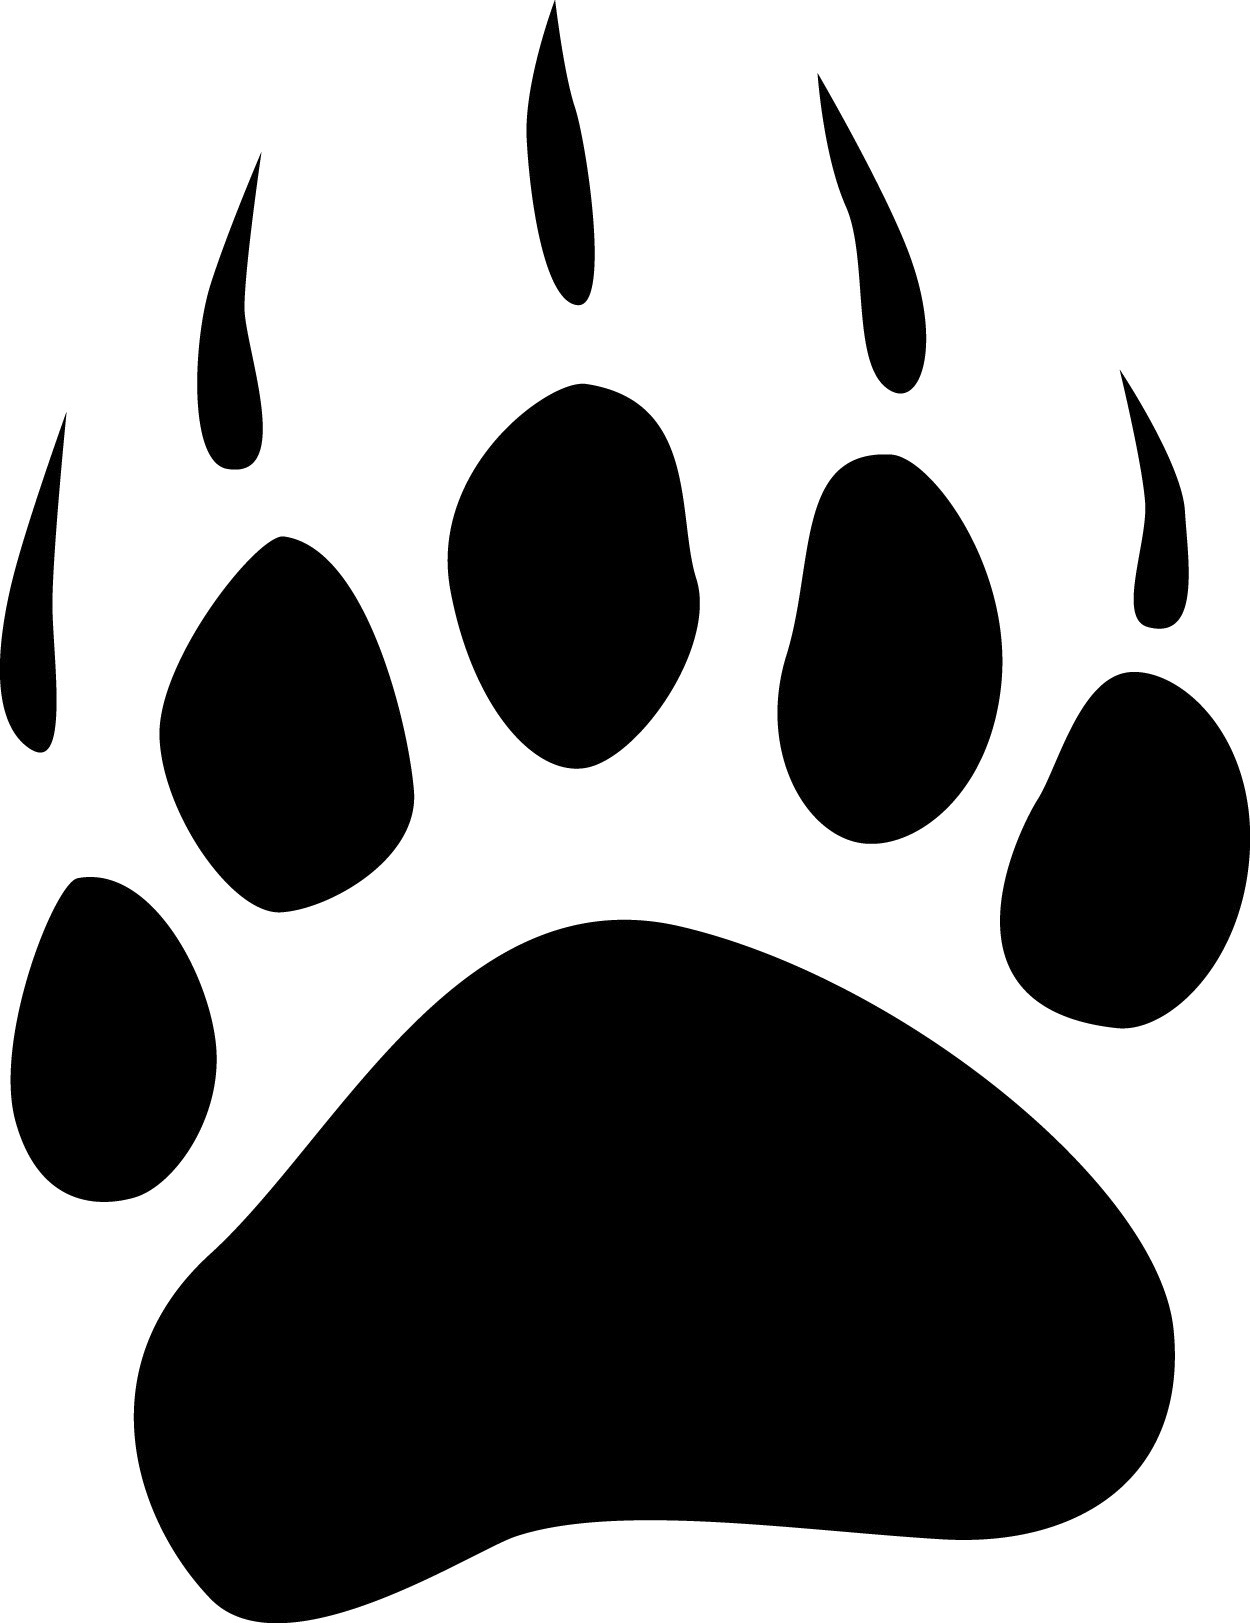 Bear Paw Print Celebrity Inspired Style Hair And Beauty Native American Wolf Paw